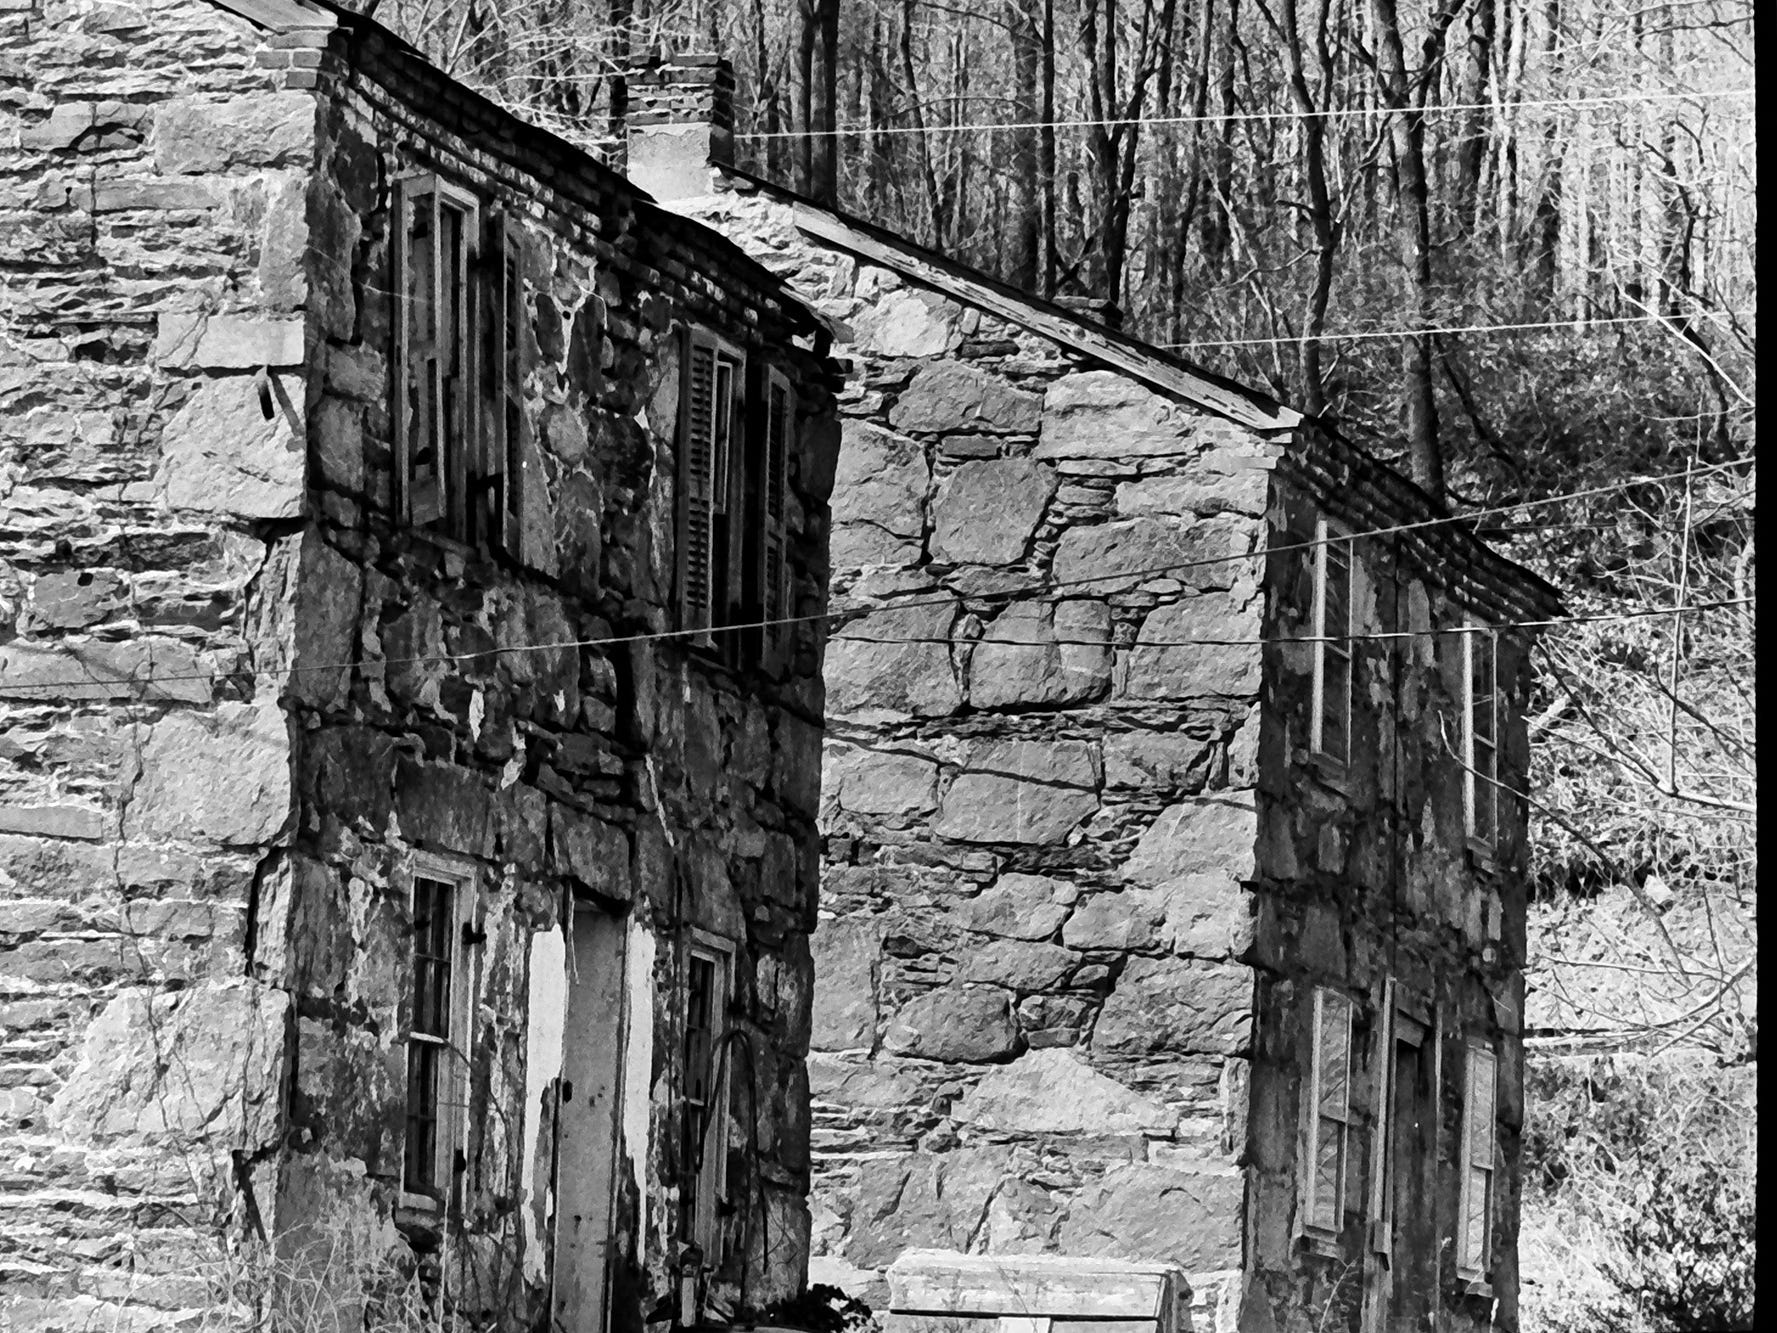 In 1985, Coulsontown's Welsh stone miners' cottages near Delta looked much the same. The buildings have undergone stabilization in the past 34 years.